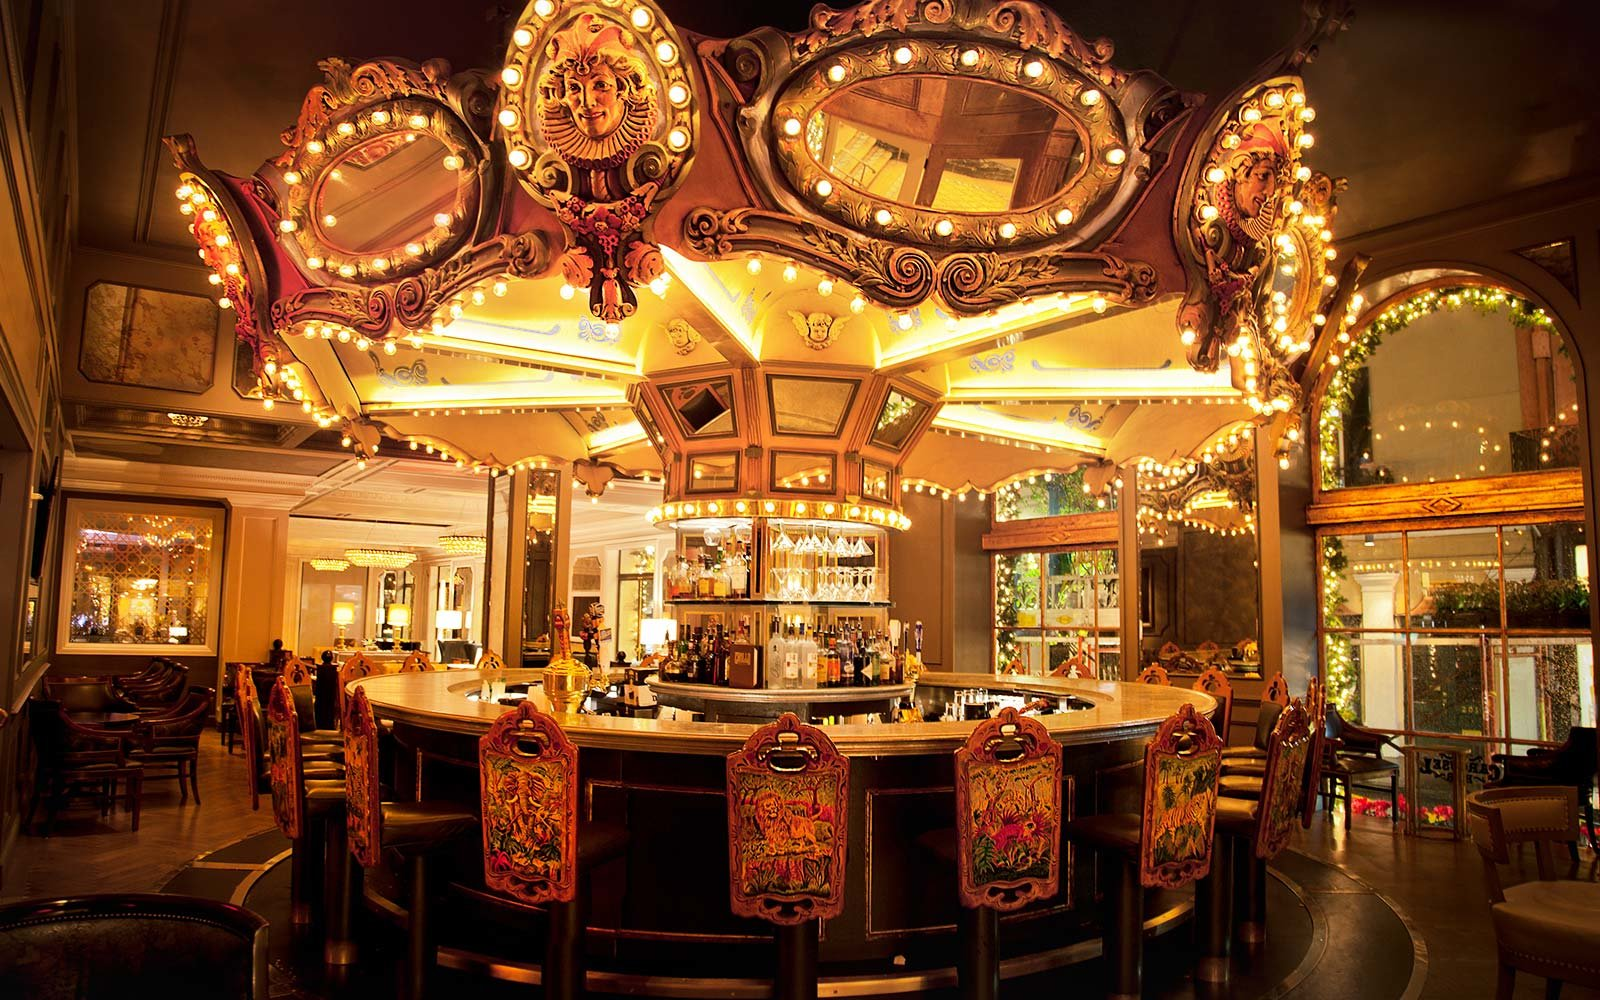 12 of the World's Most Iconic Hotel Bars